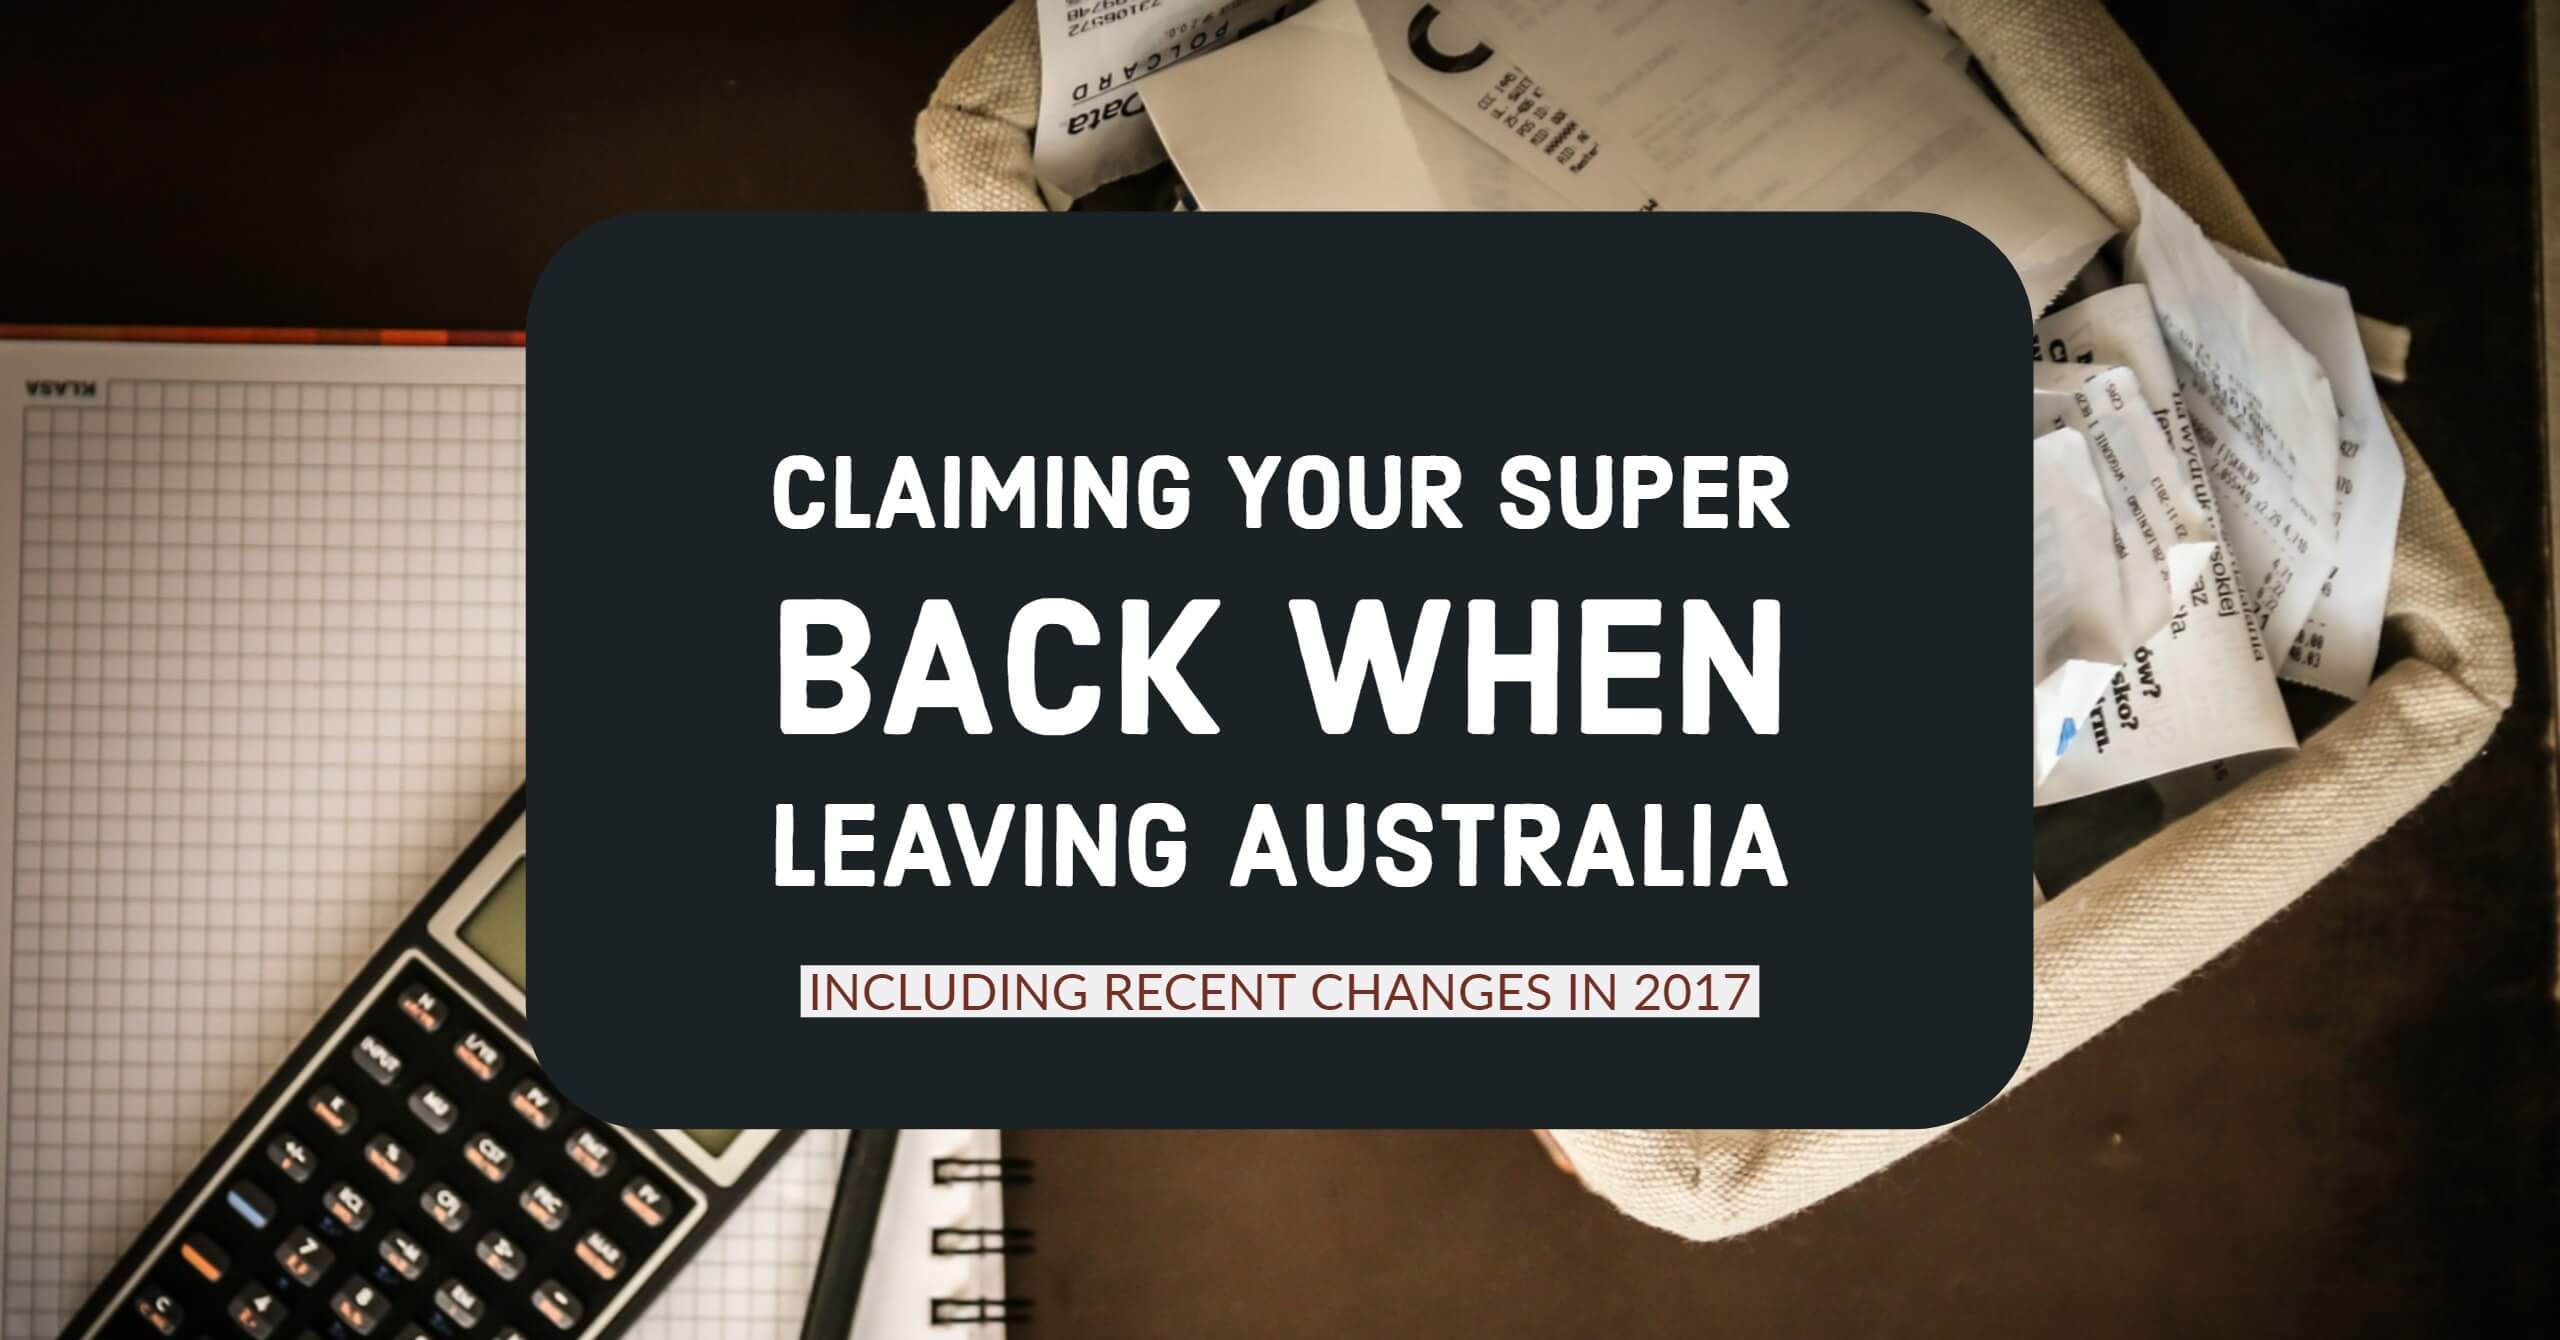 Claiming Your Superannuation Back When Leaving Australia including changes that happened in 2017